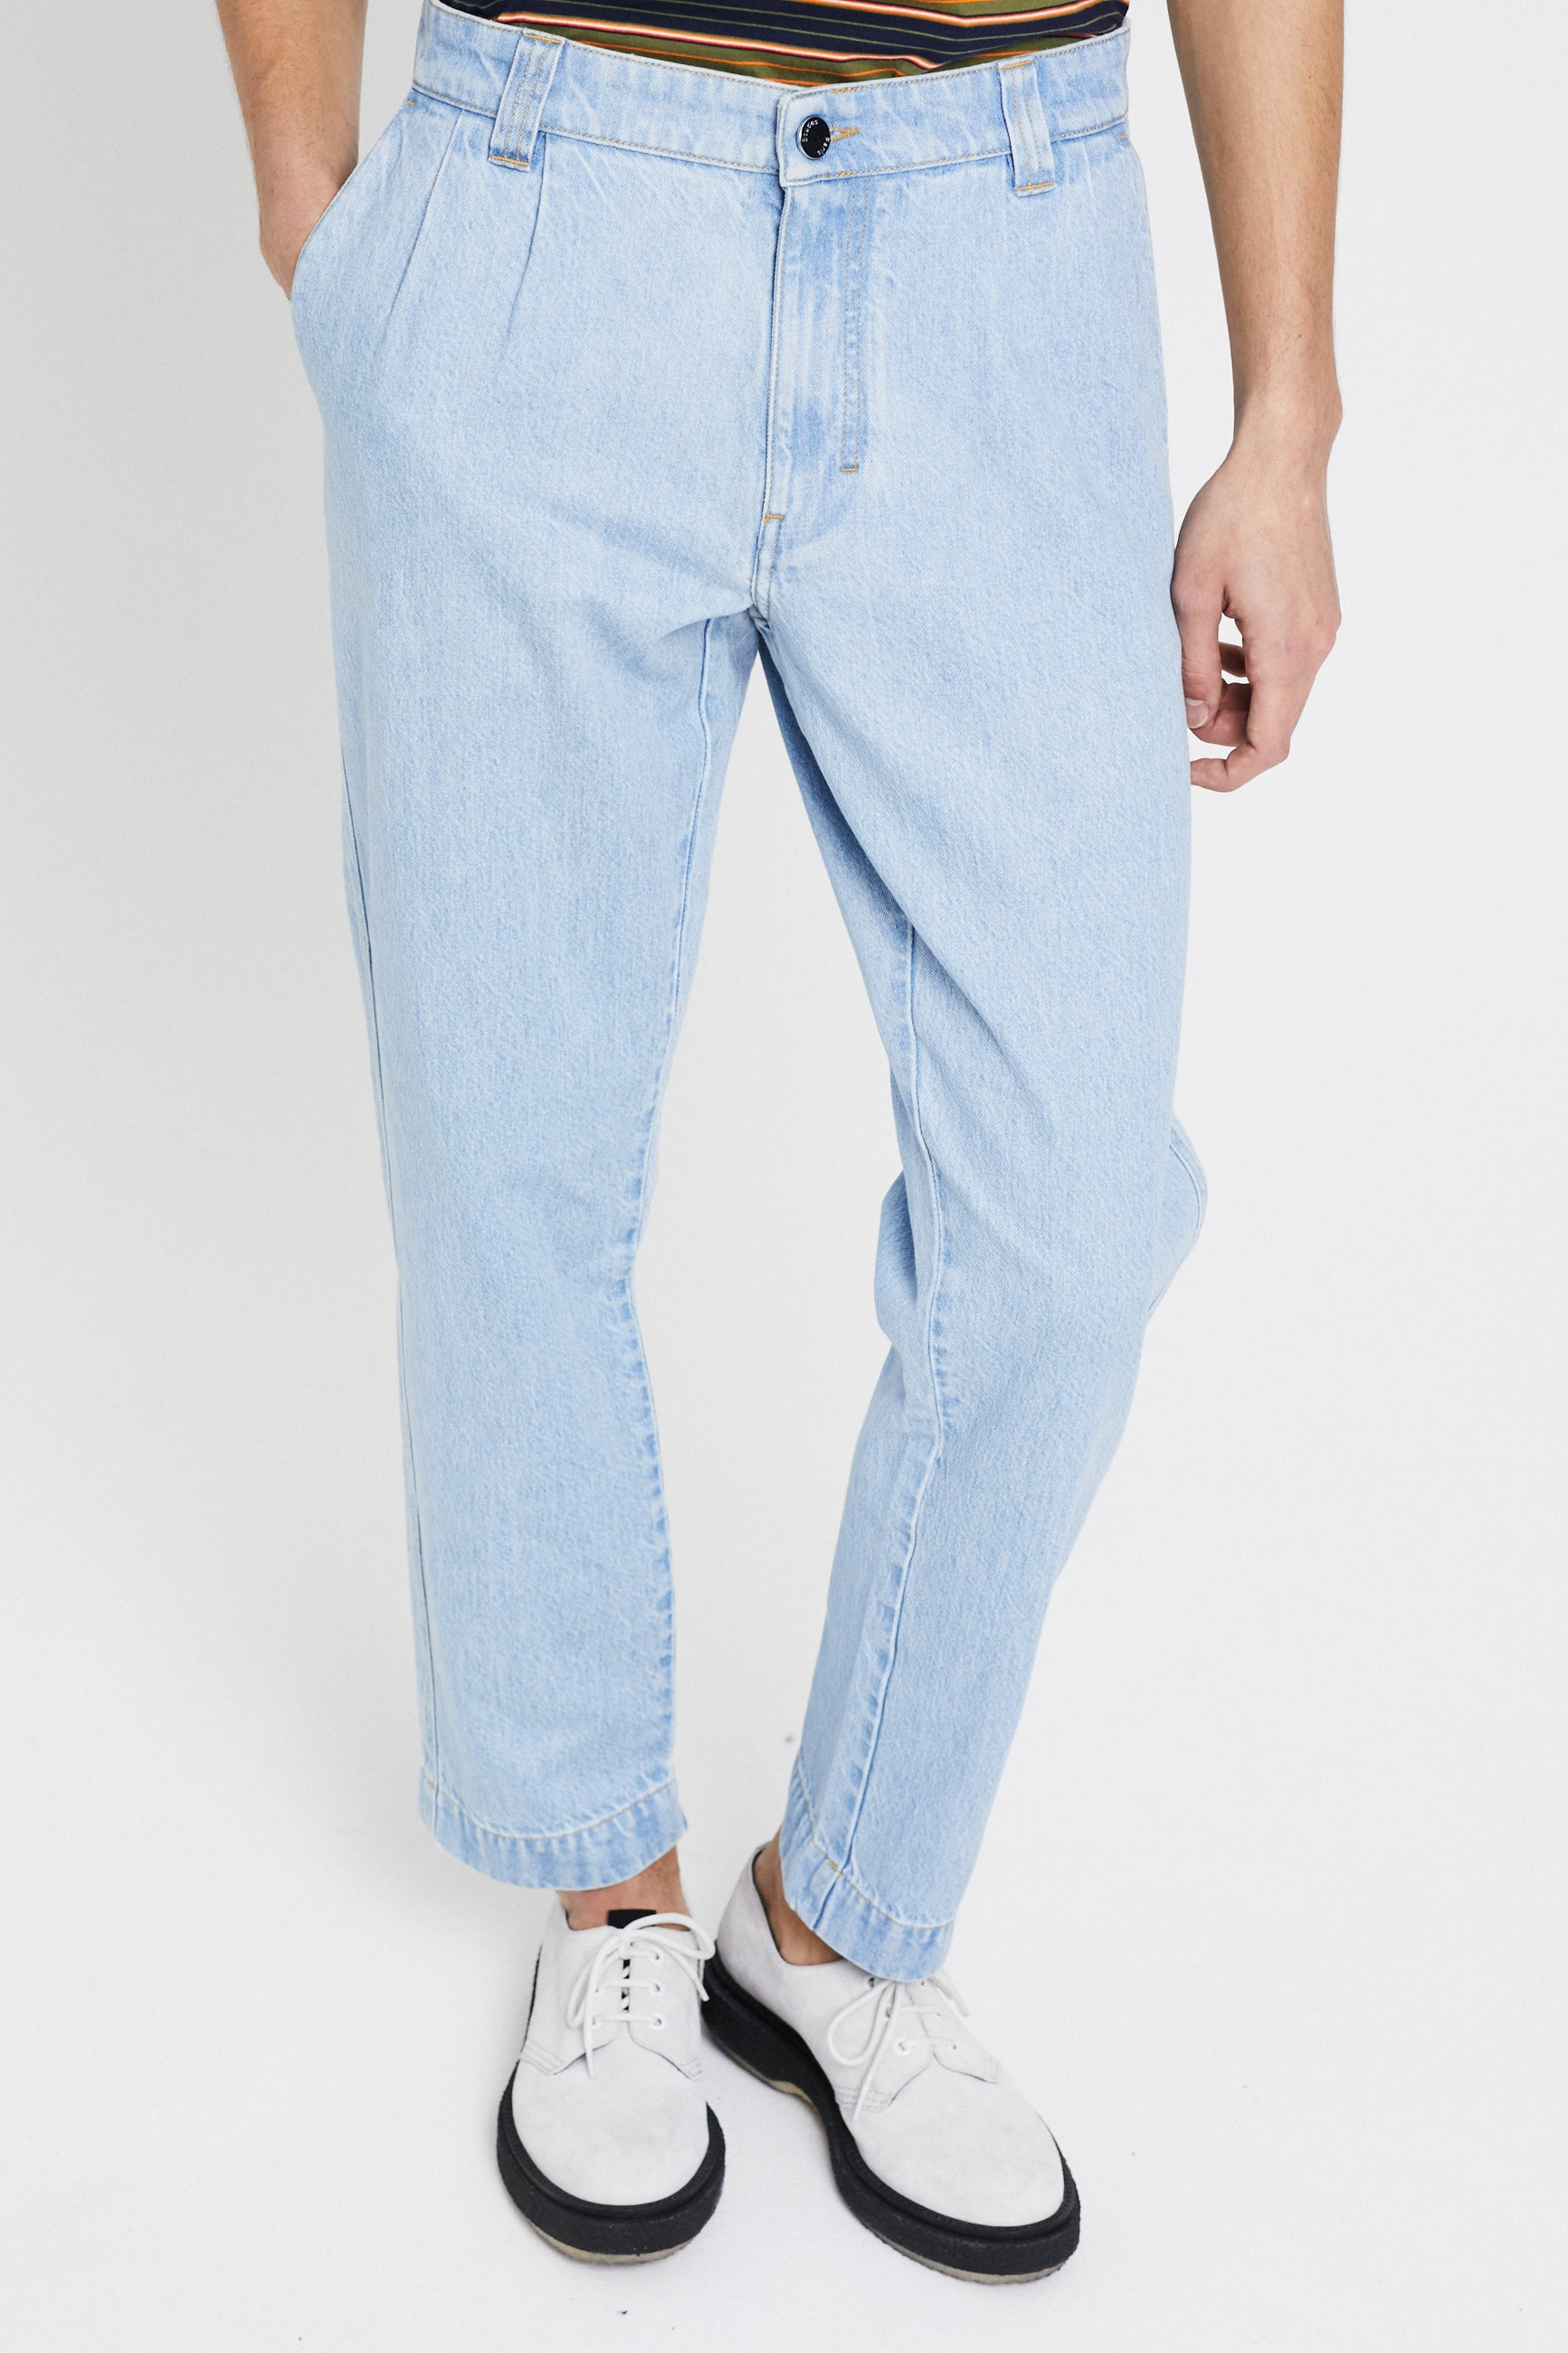 Études Cinema Denim Stone Trousers 2